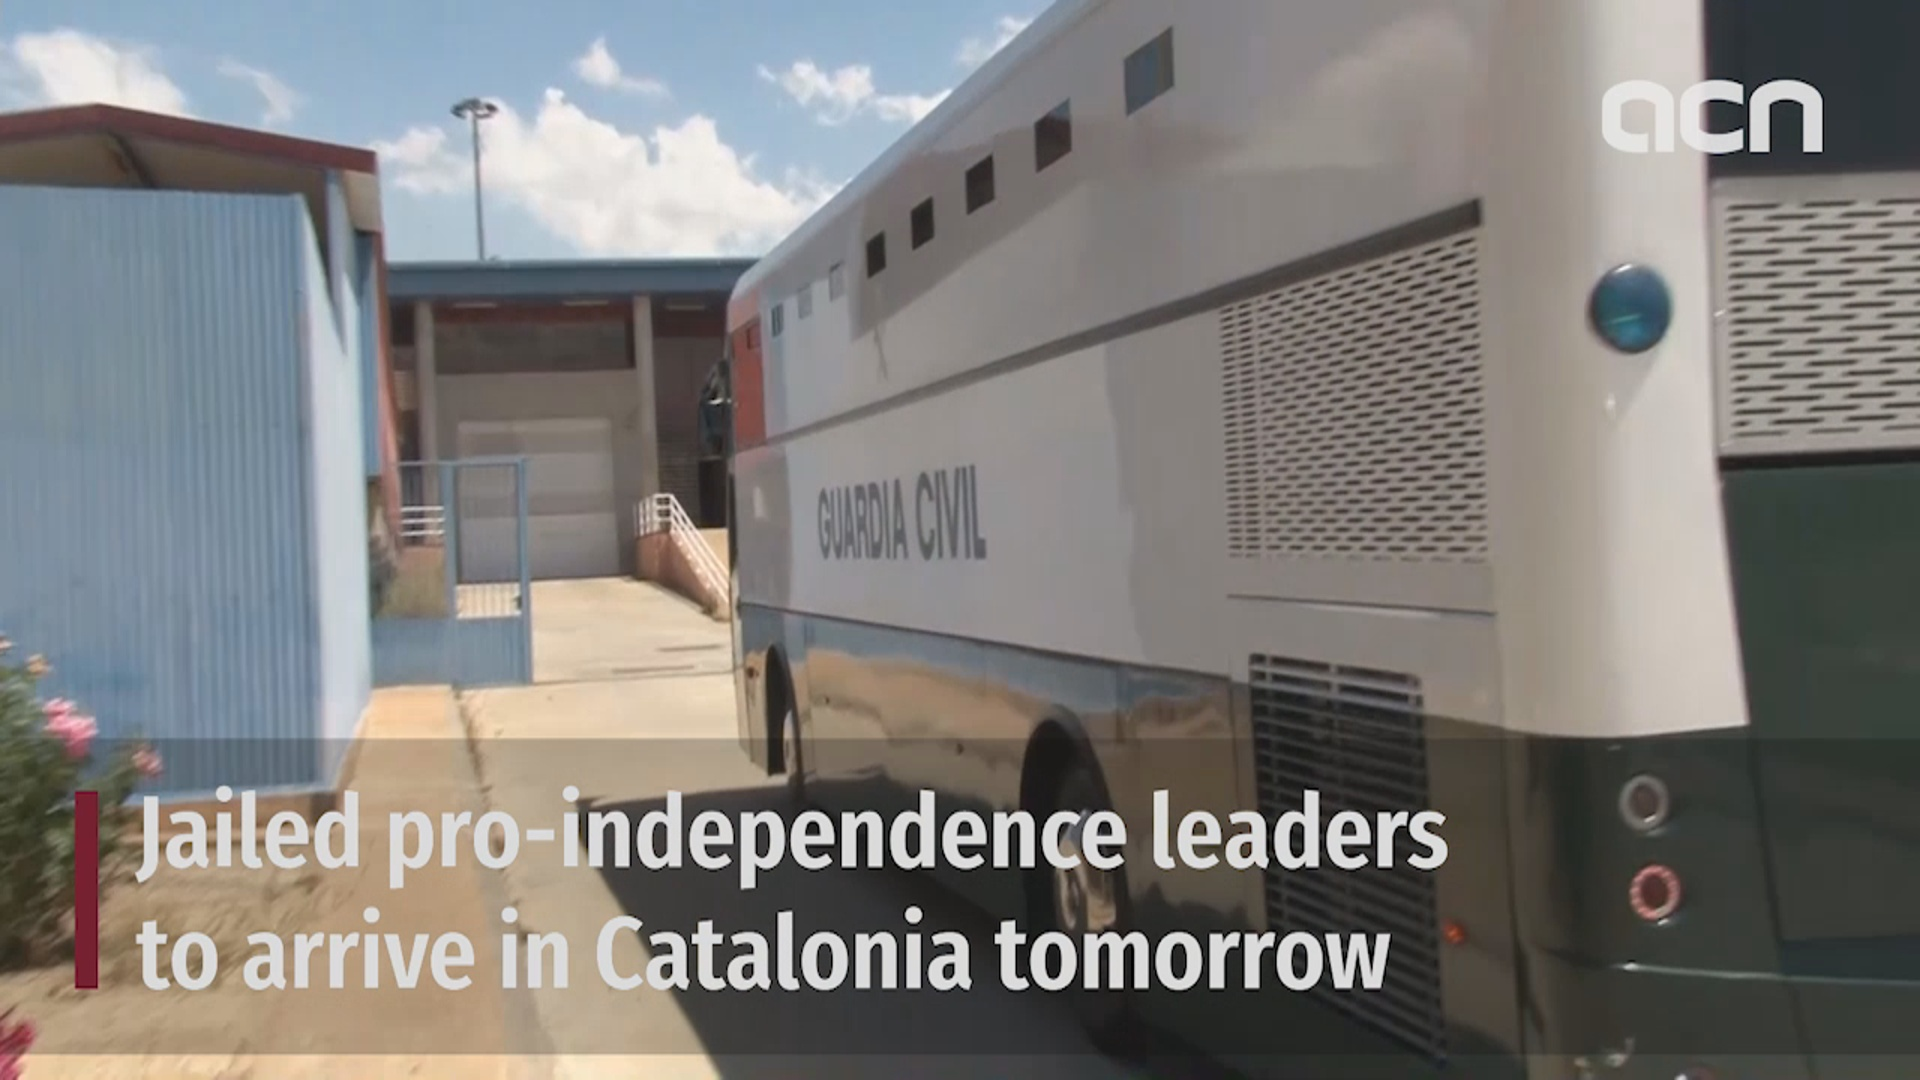 Jailed pro-independence leaders to arrive in Catalonia on Wednesday